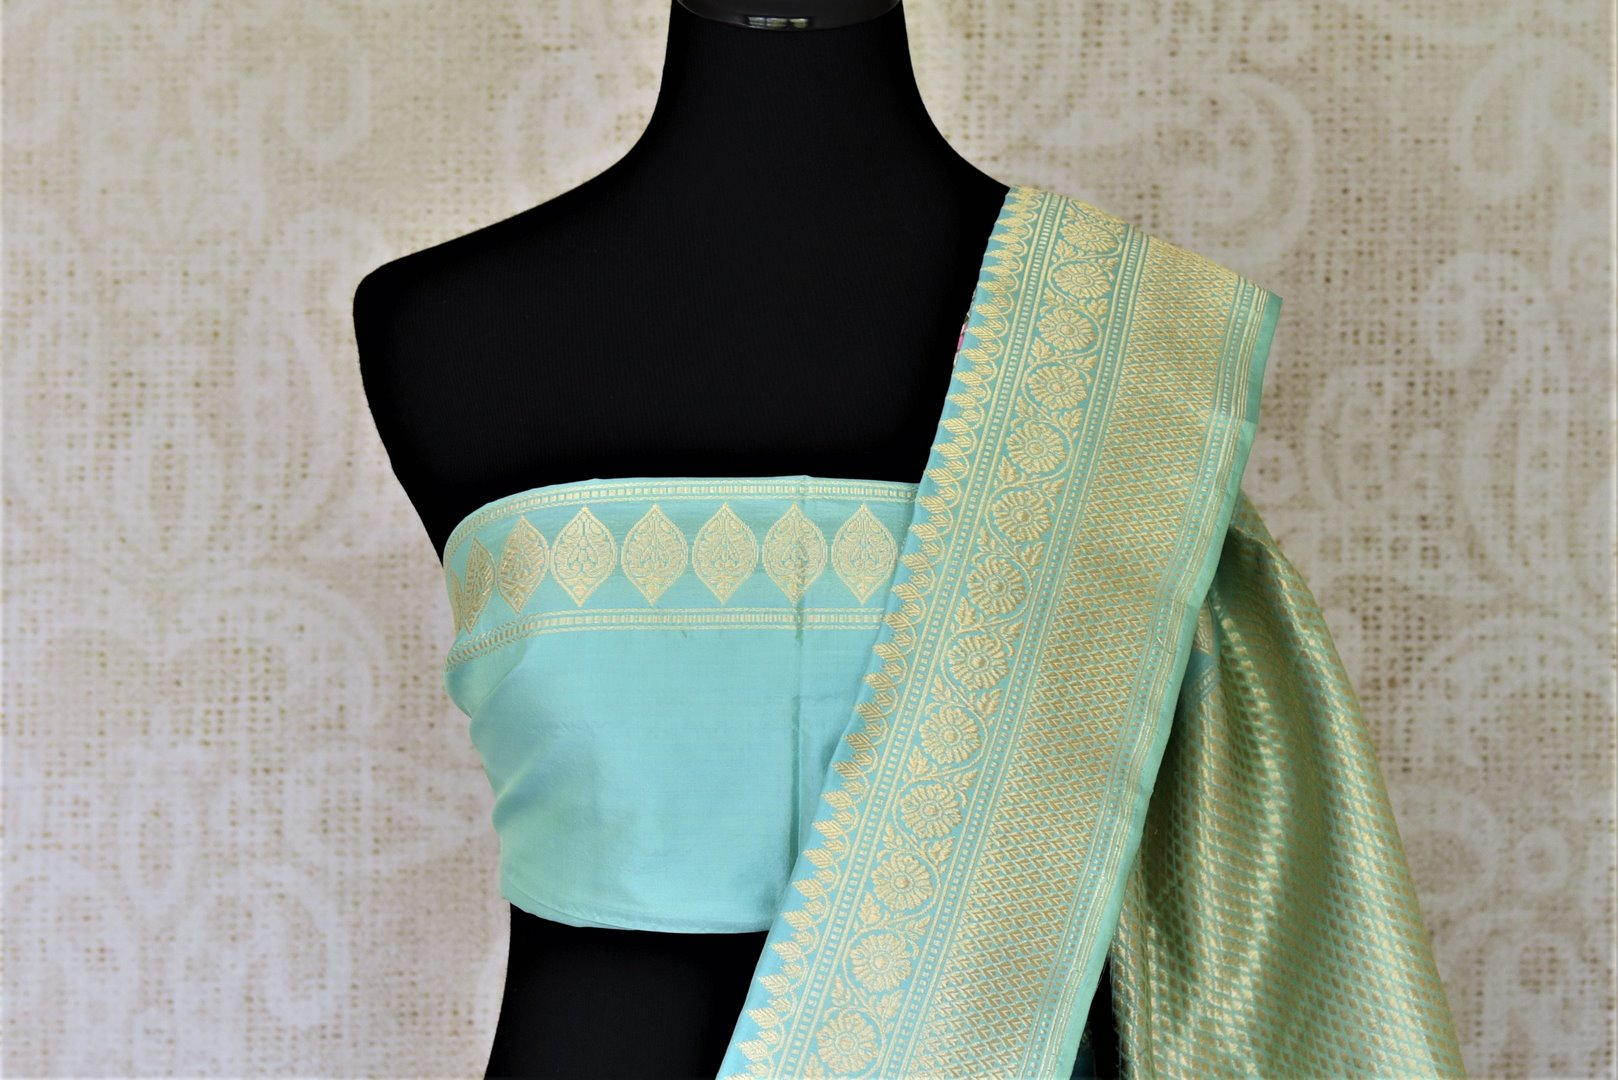 Buy gorgeous light blue Banarasi silk sari online in USA with minakari zari floral motifs. Enhance your festive look with pure silk sarees, Banarasi sarees, chanderi sarees in USA from Pure Elegance Indian clothing store in USA.-blouse pallu